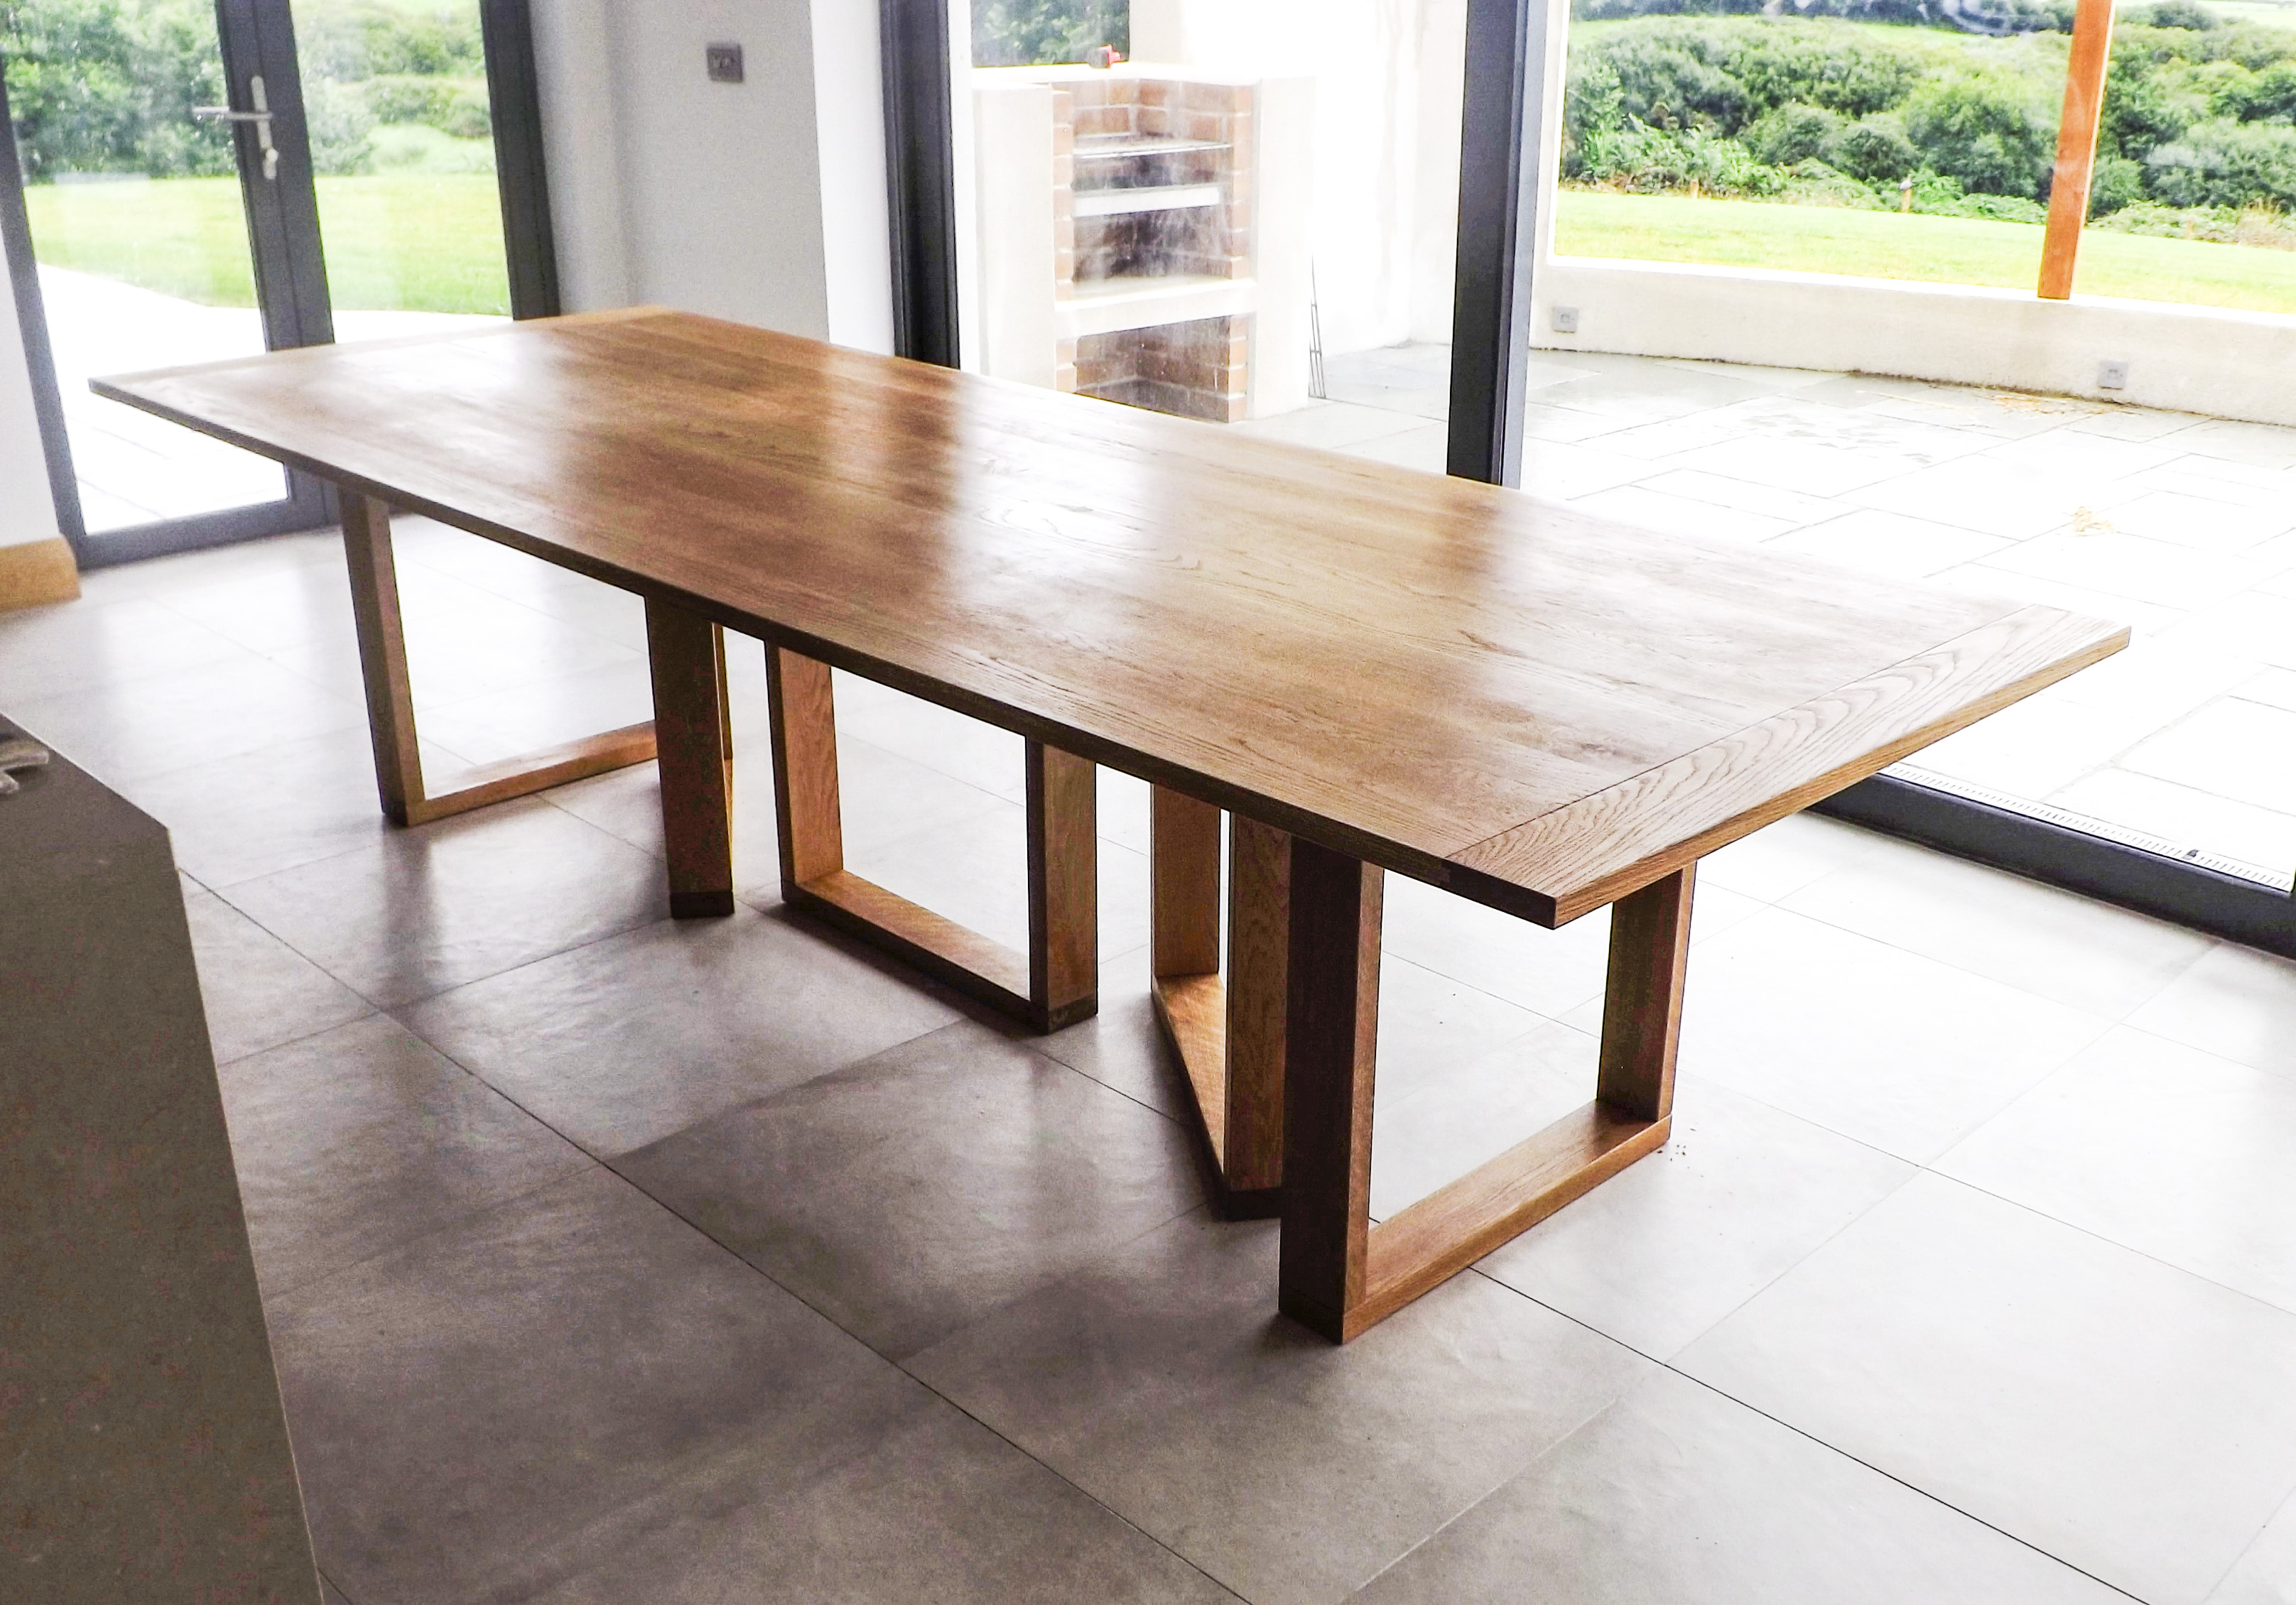 14 Seater Framed Dining Table Shane Tubrid Furniture By Design